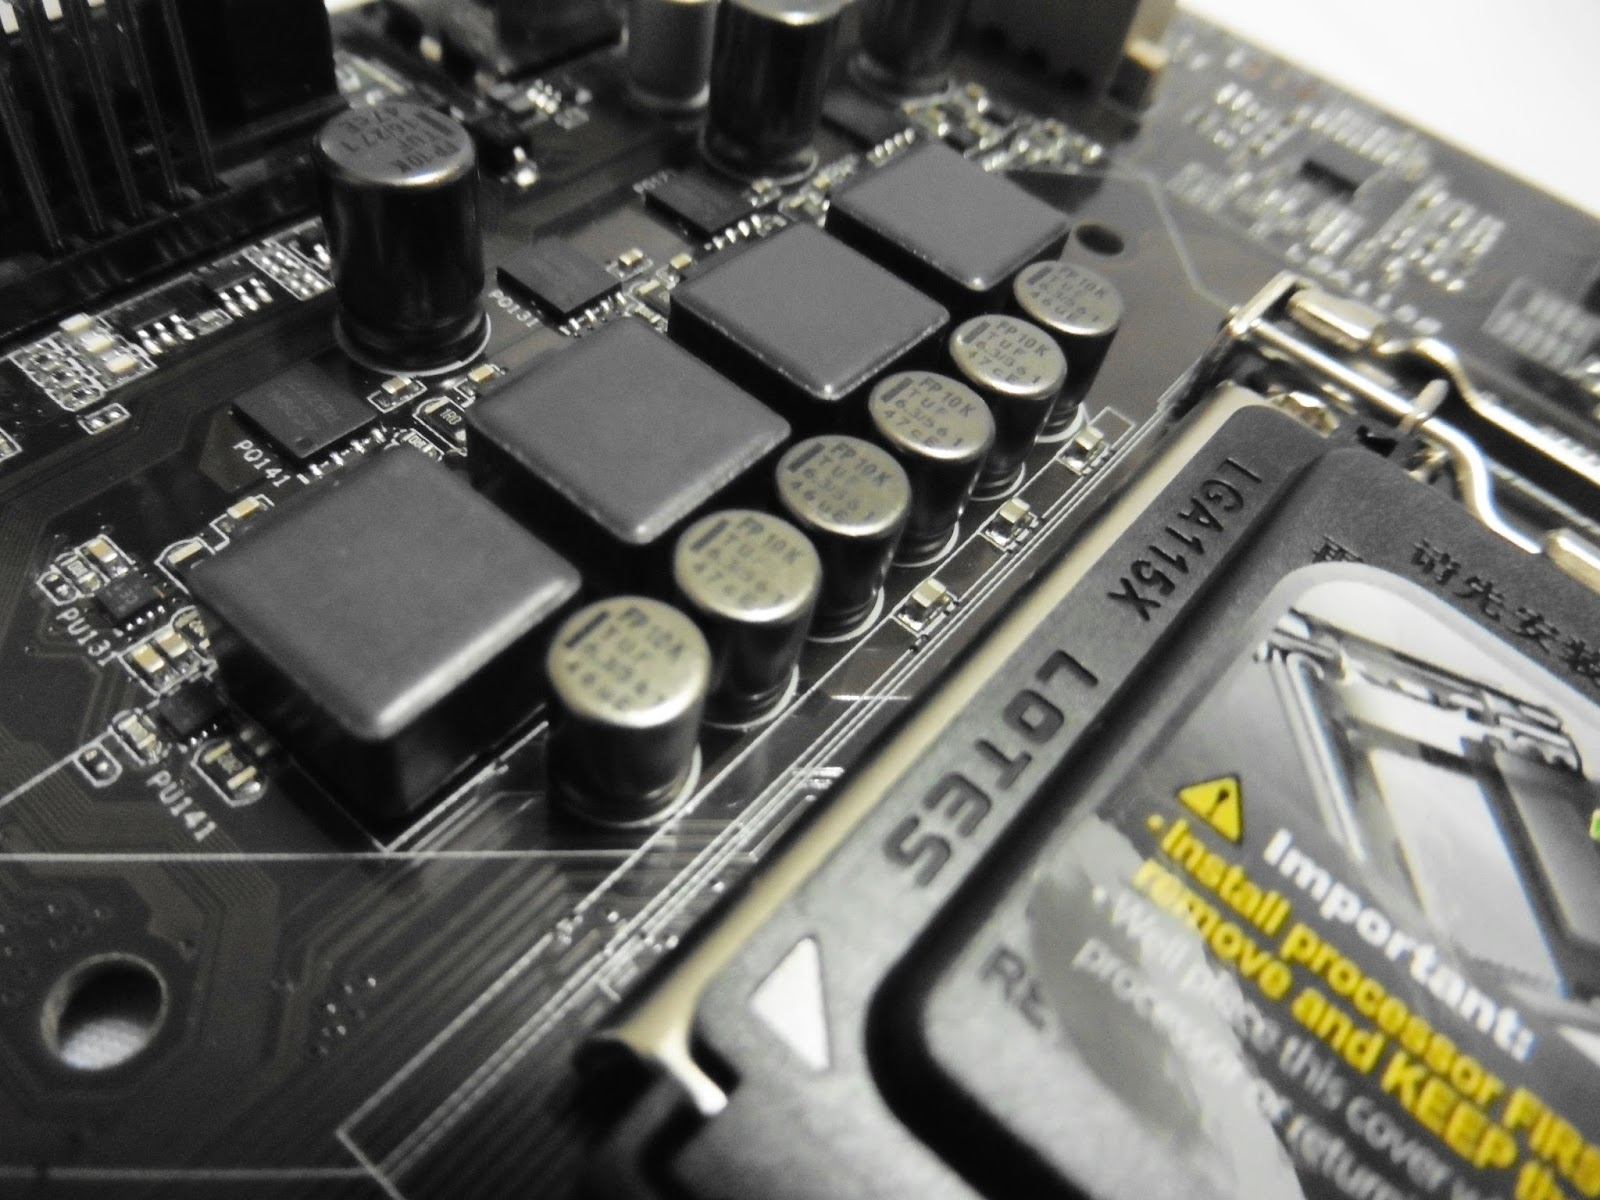 Unboxing & Review: ASUS Trooper B85